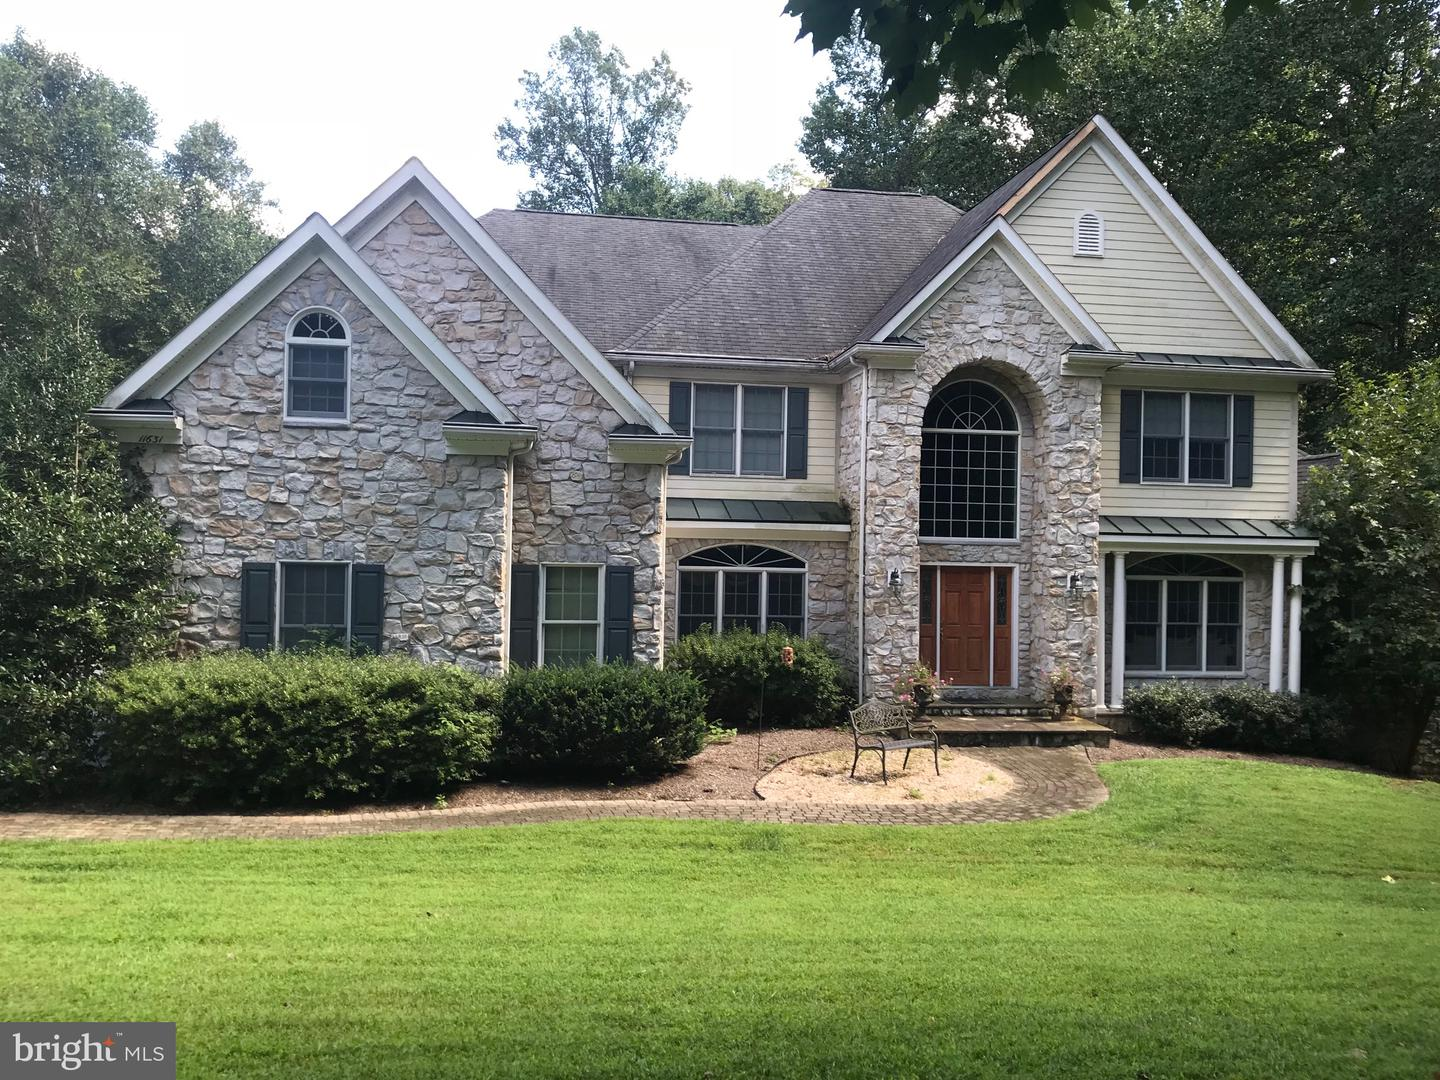 Single Family for Sale at 11631 Whitetail Ln 11631 Whitetail Ln Ellicott City, Maryland 21042 United States